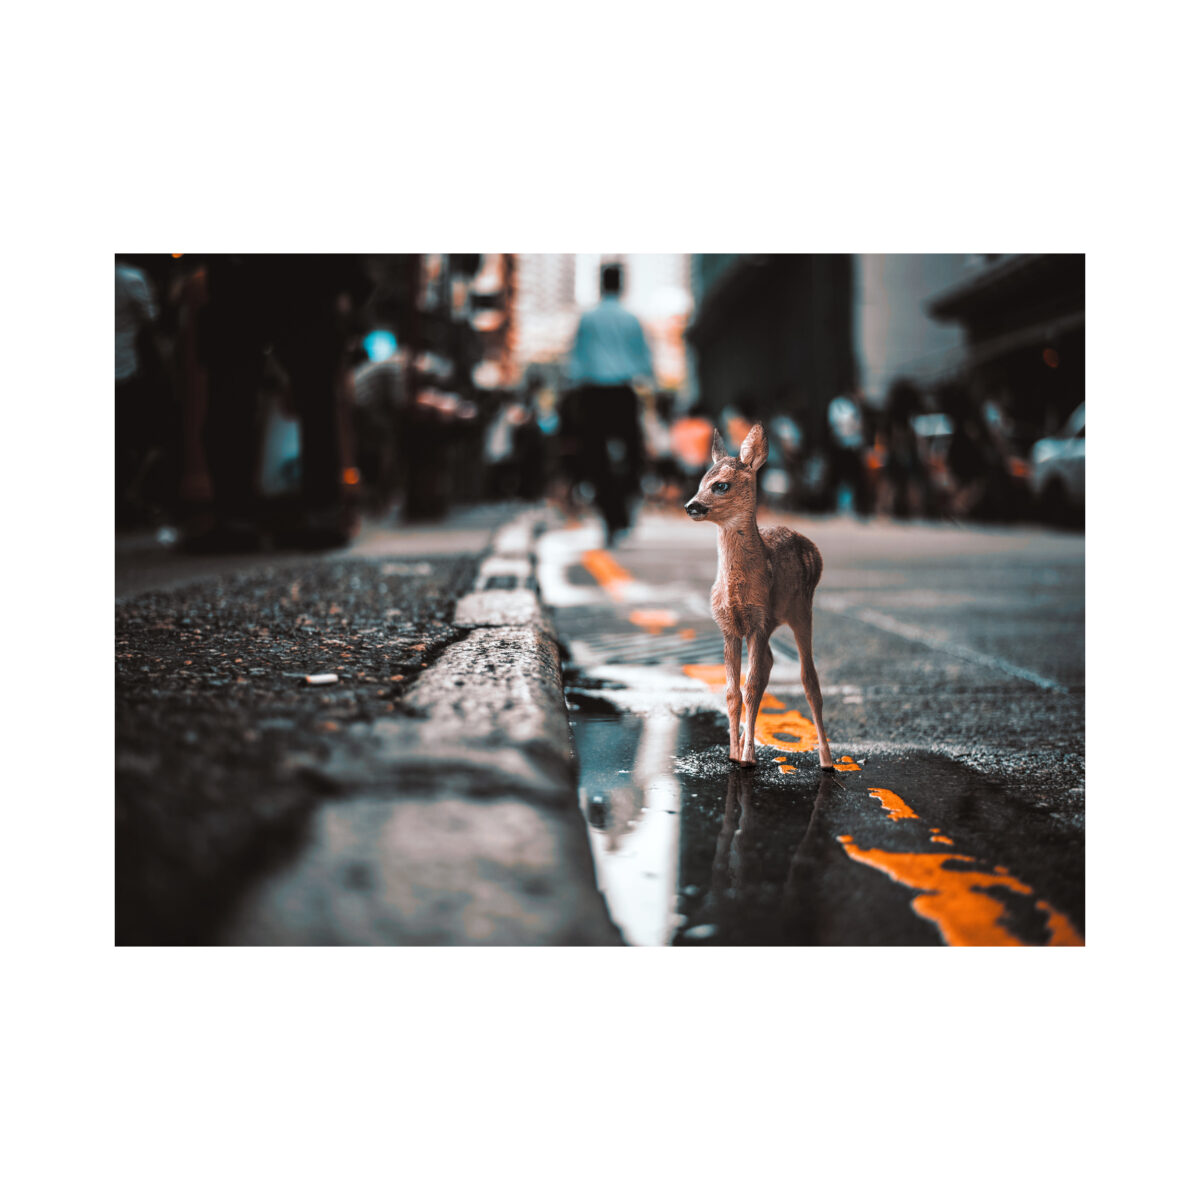 Bambi in the streets